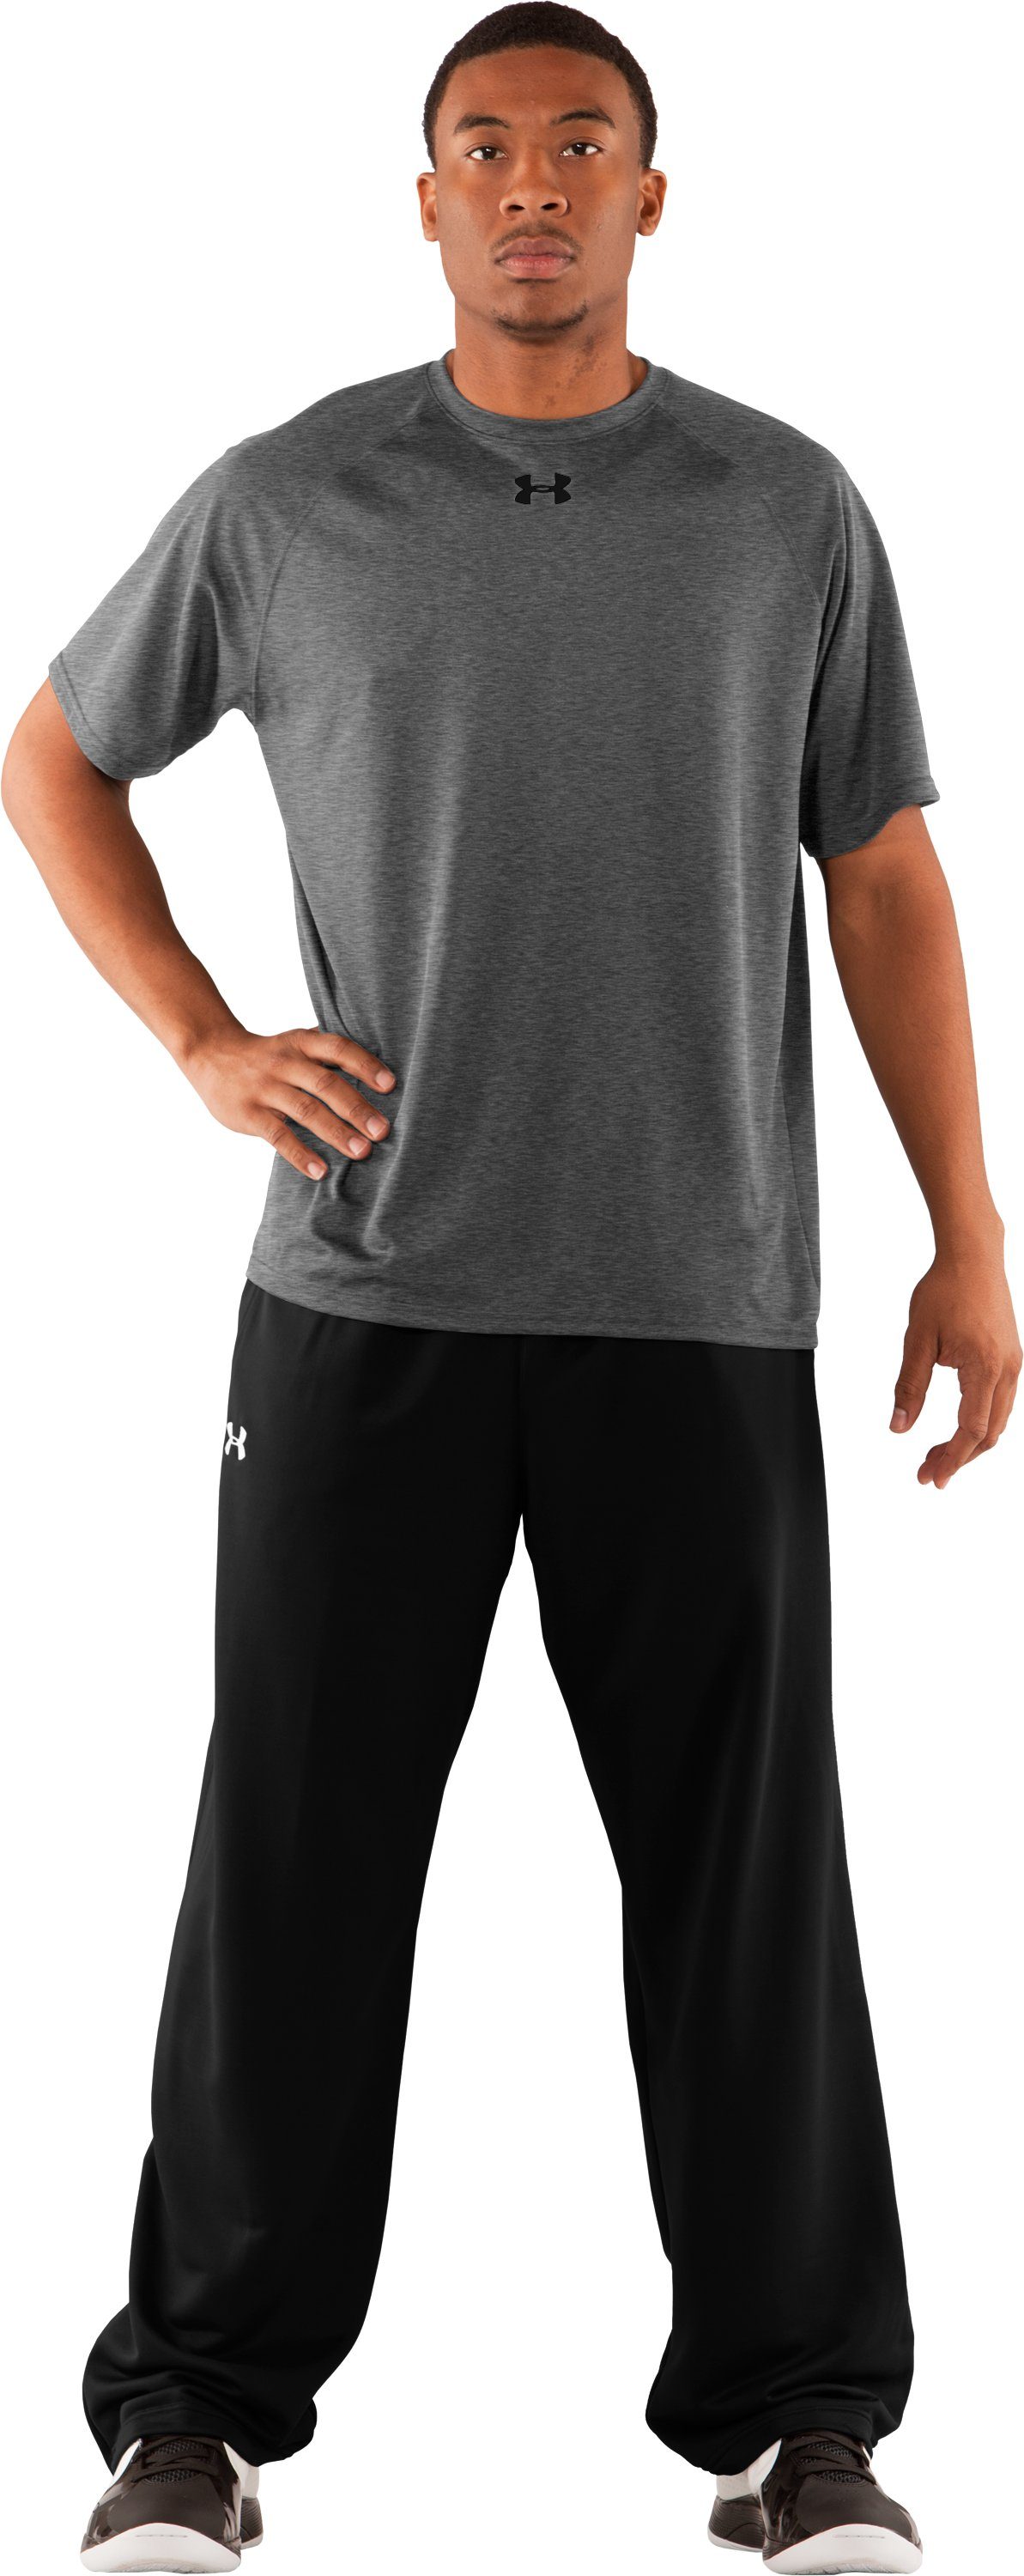 Men's HeatGear® Team Loose Short Sleeve T-Shirt, Medium Gray Heather, Front